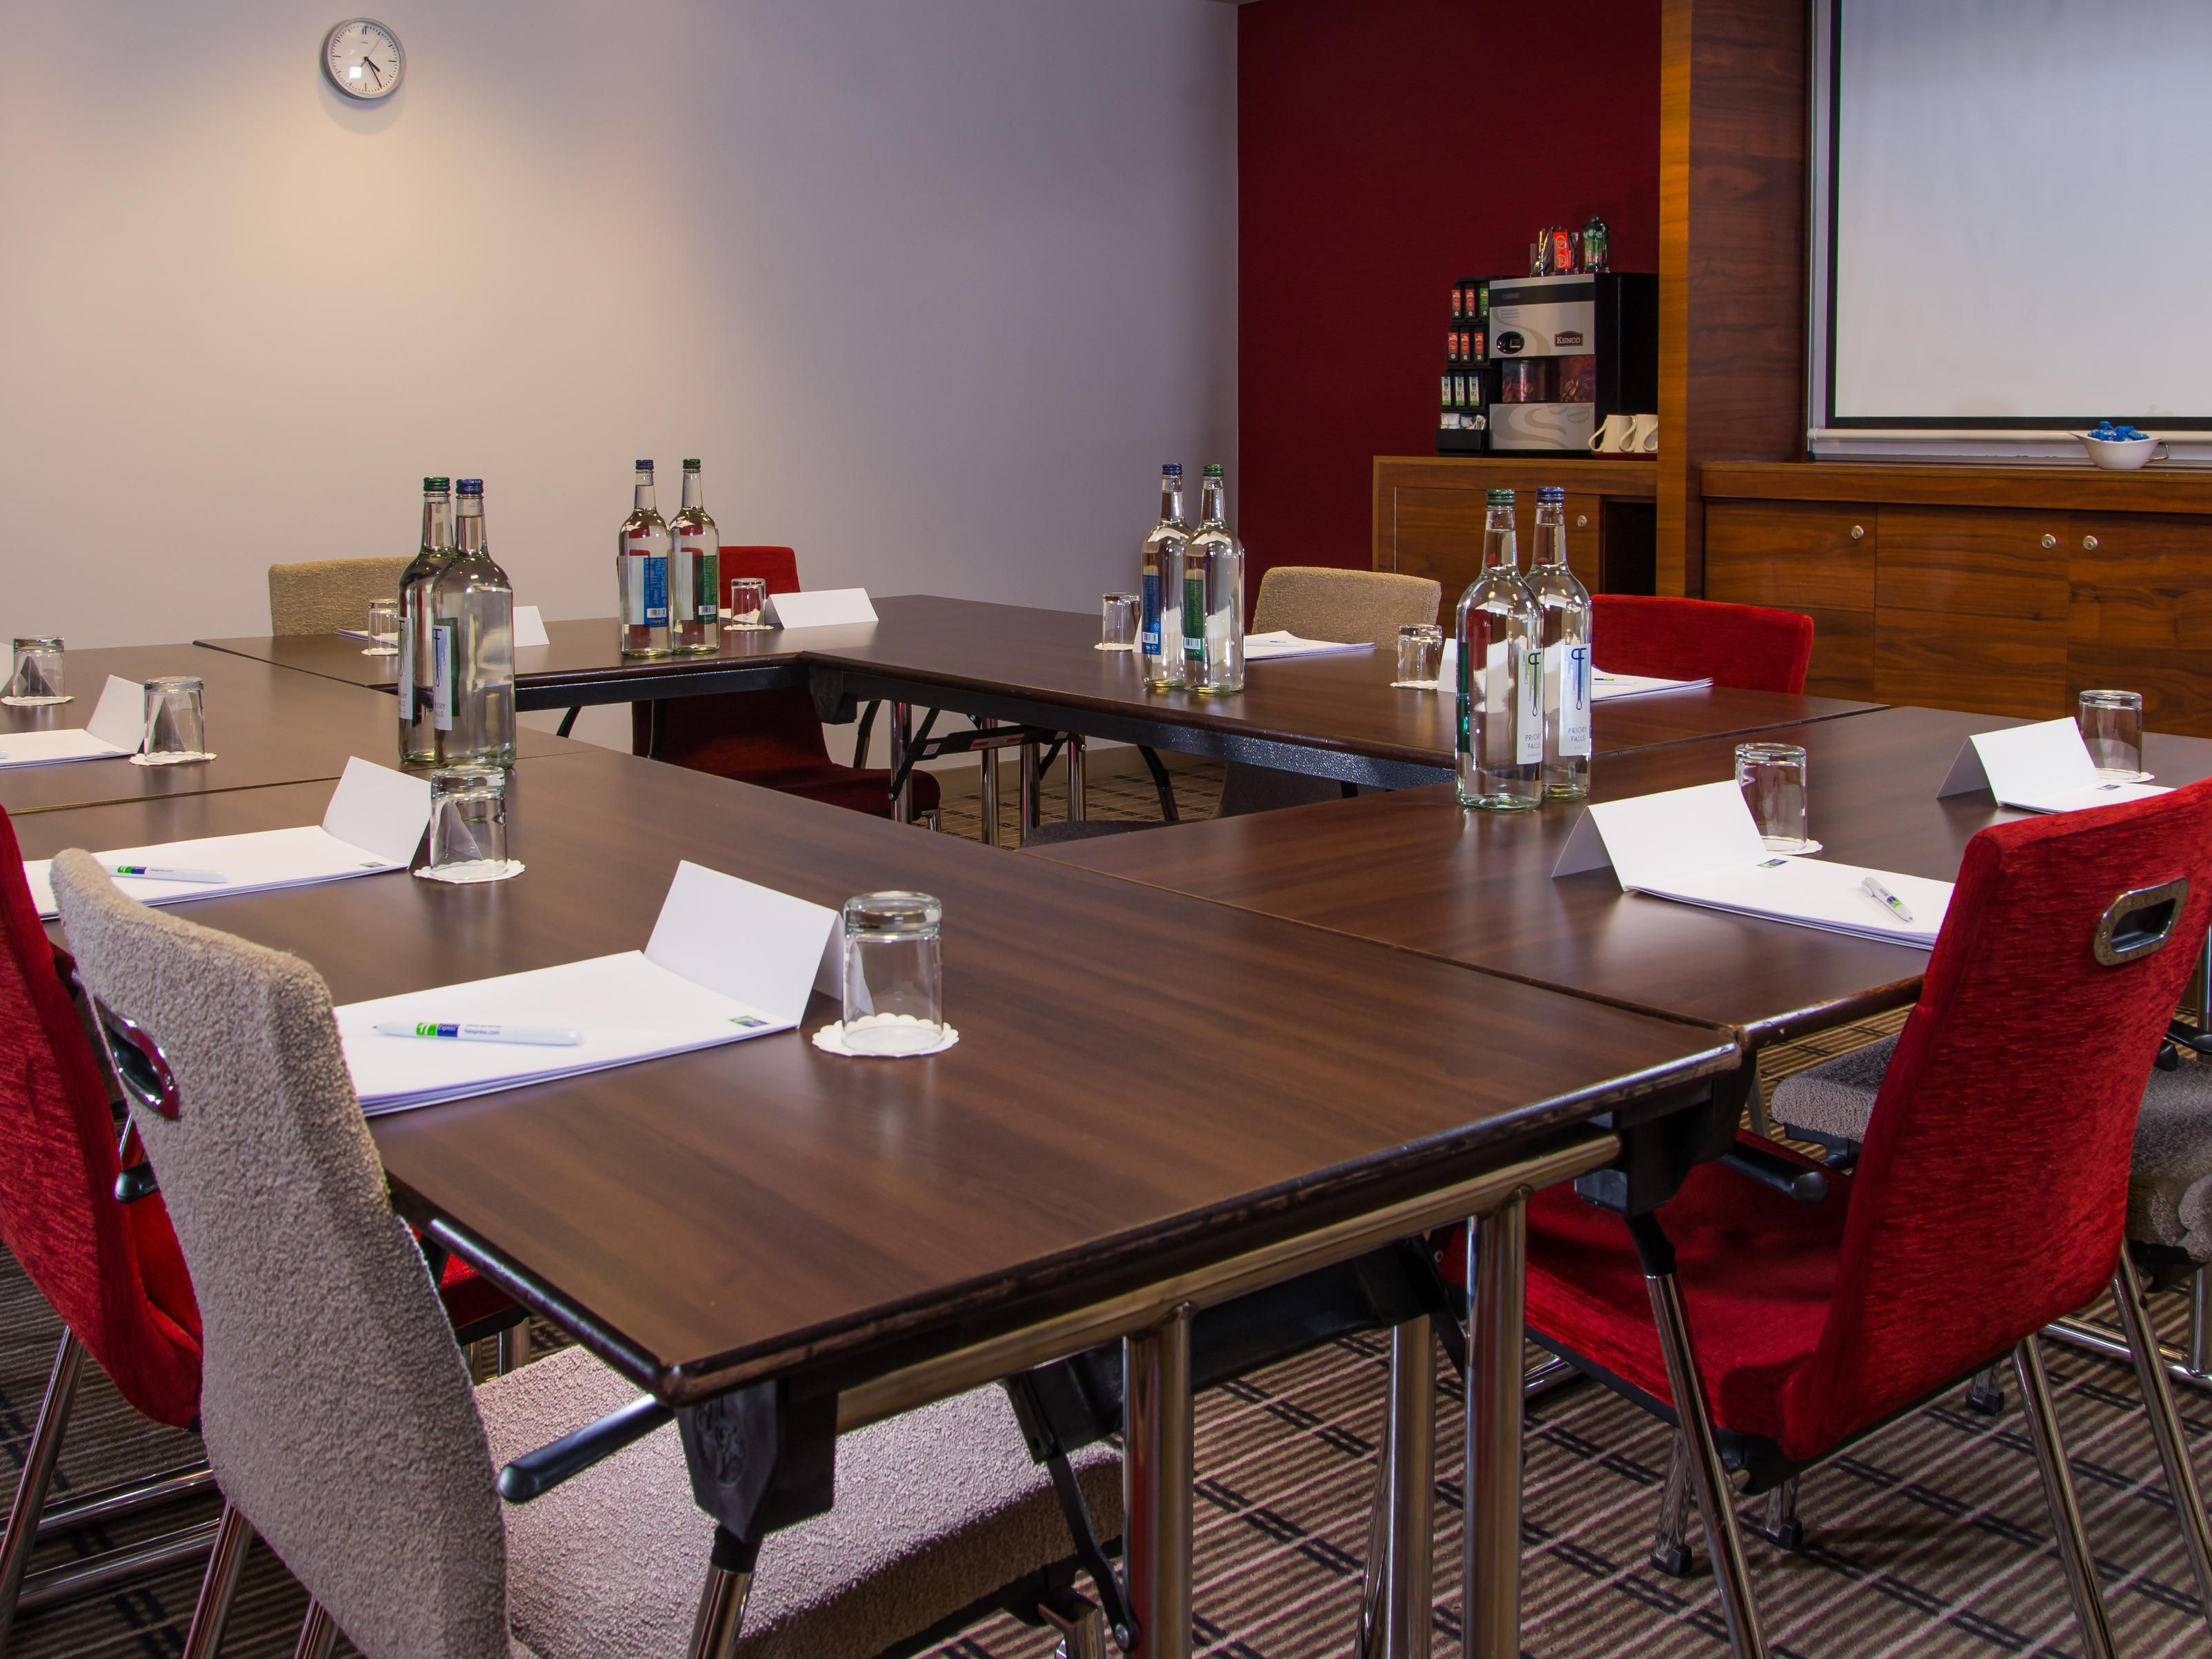 Holding a meeting or interview? We have rates to suit your needs!